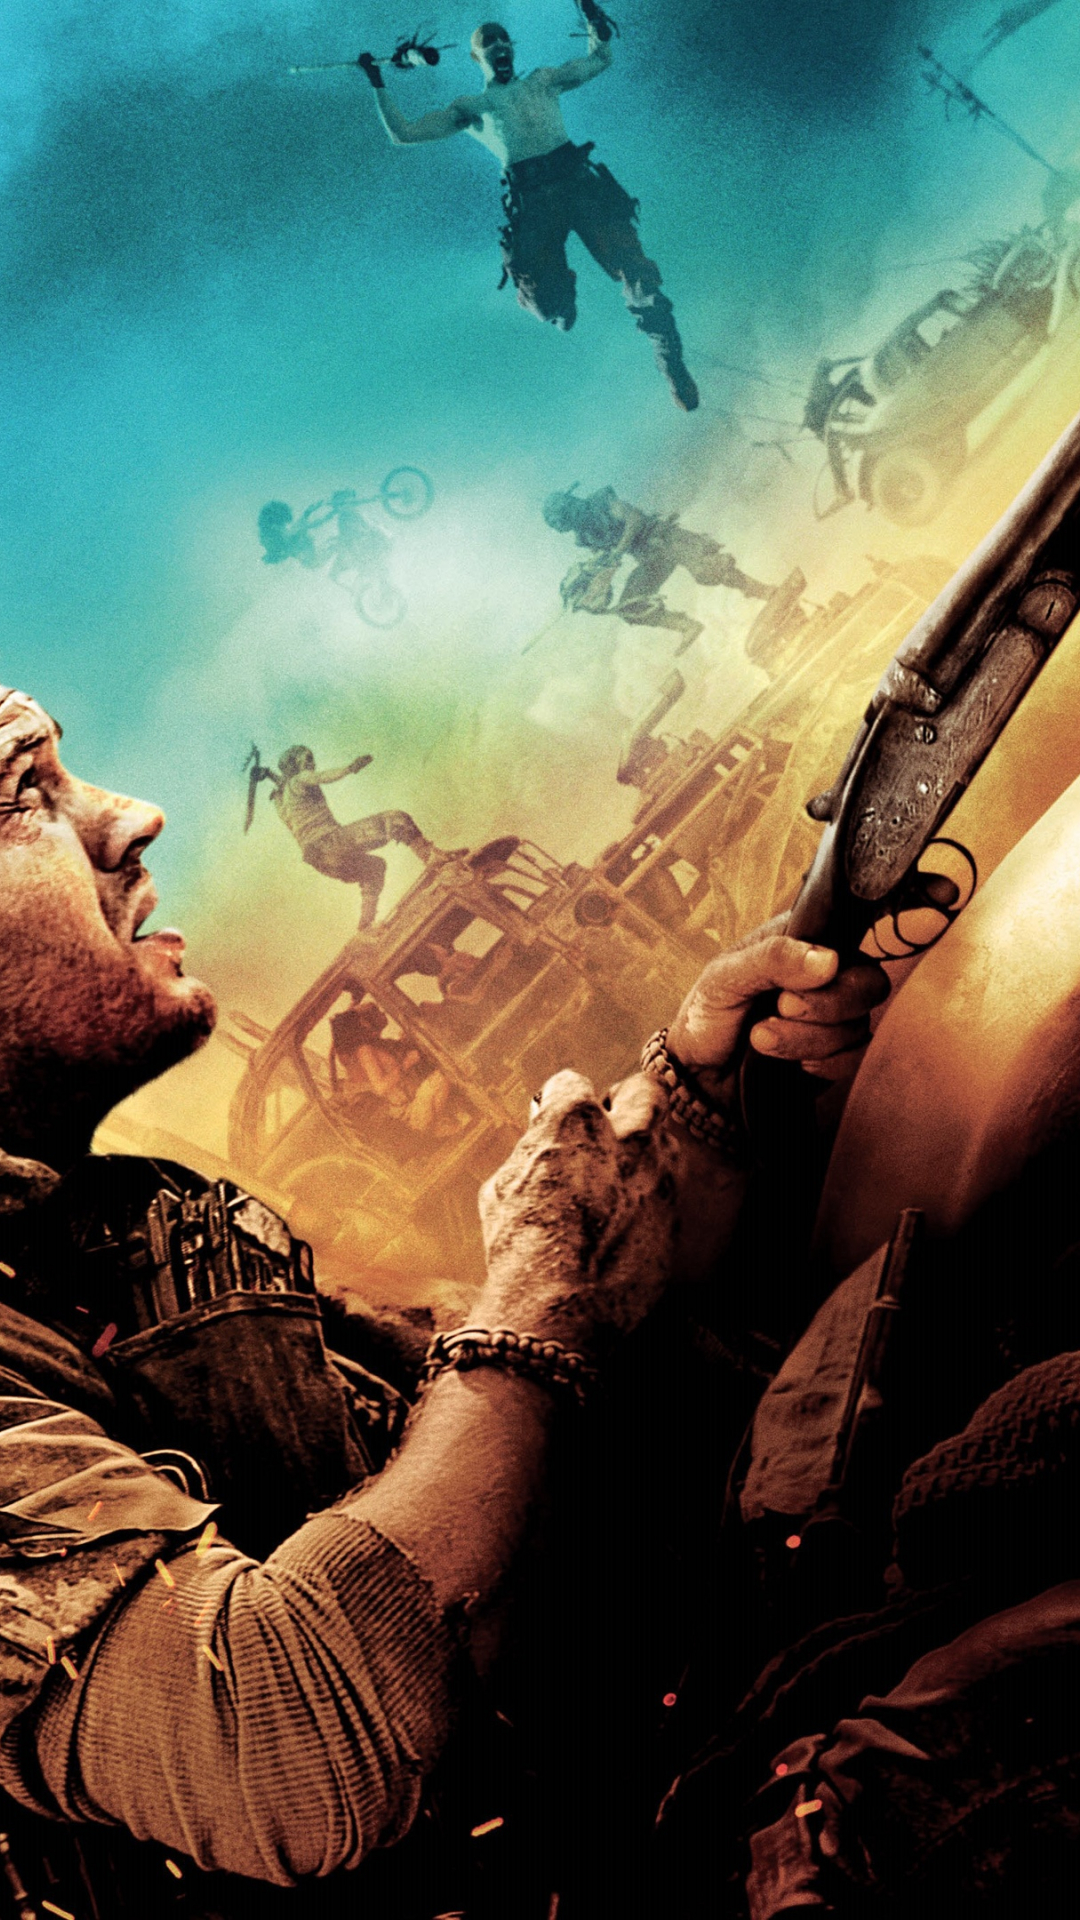 Free Download Mad Max Fury Road Movie Wallpapers Hd Wallpapers 3840x2160 For Your Desktop Mobile Tablet Explore 47 Mad Max Hd Wallpaper Fury Movie Wallpaper Doof Warrior Wallpaper Mad